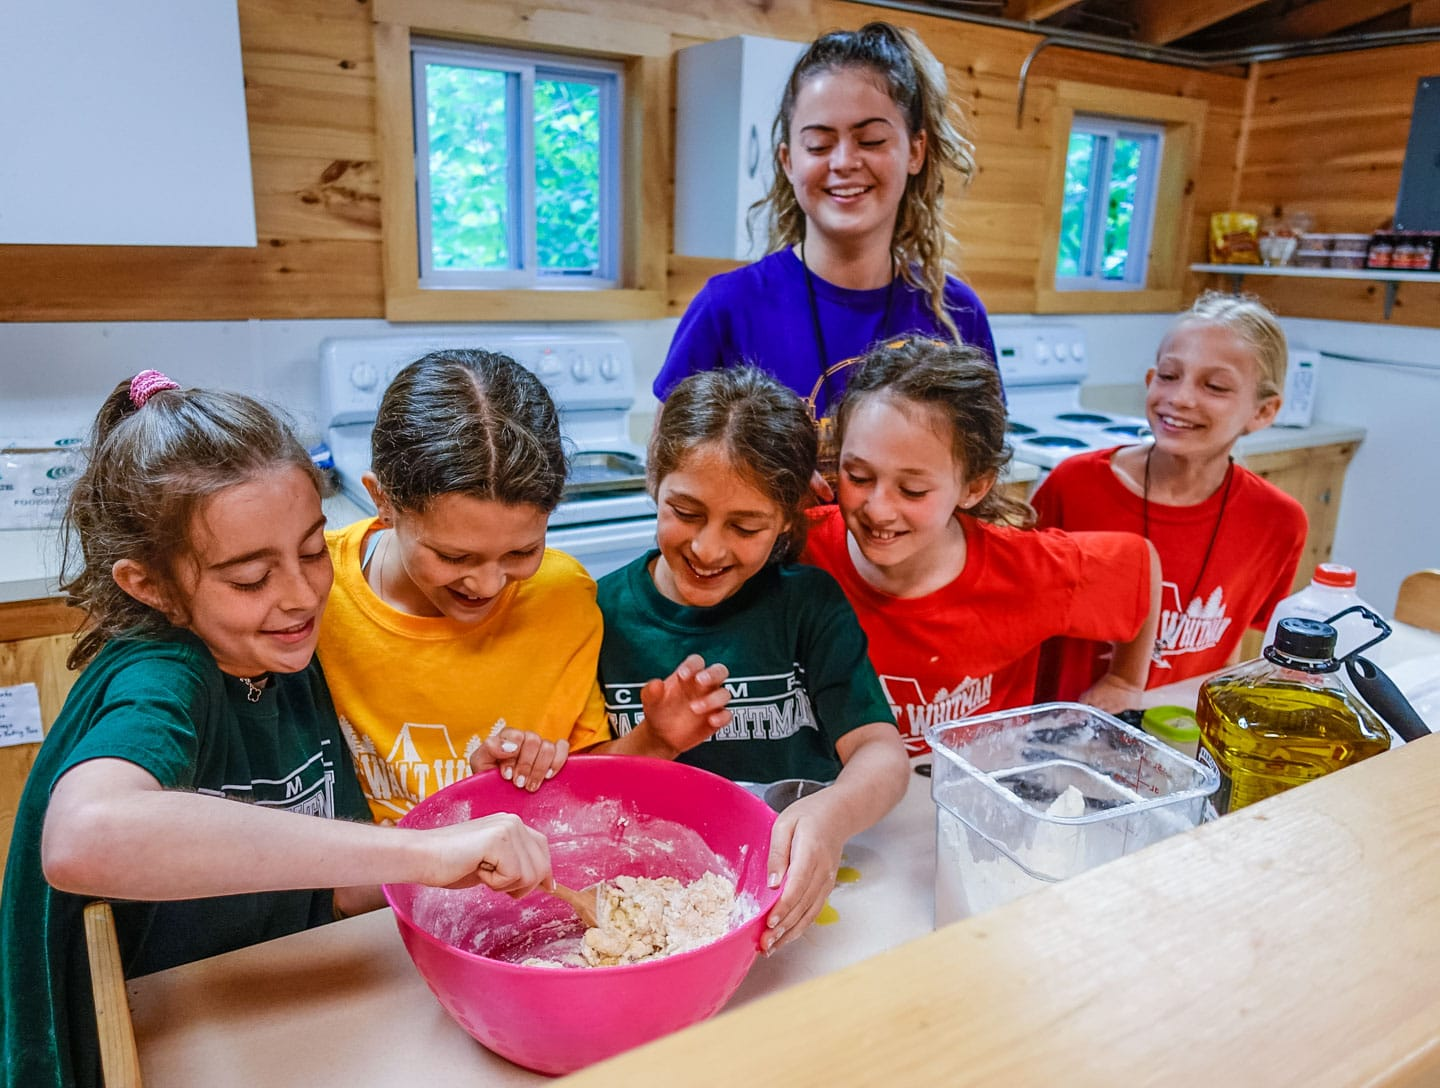 a group of girls helping mix ingredients in a bowl